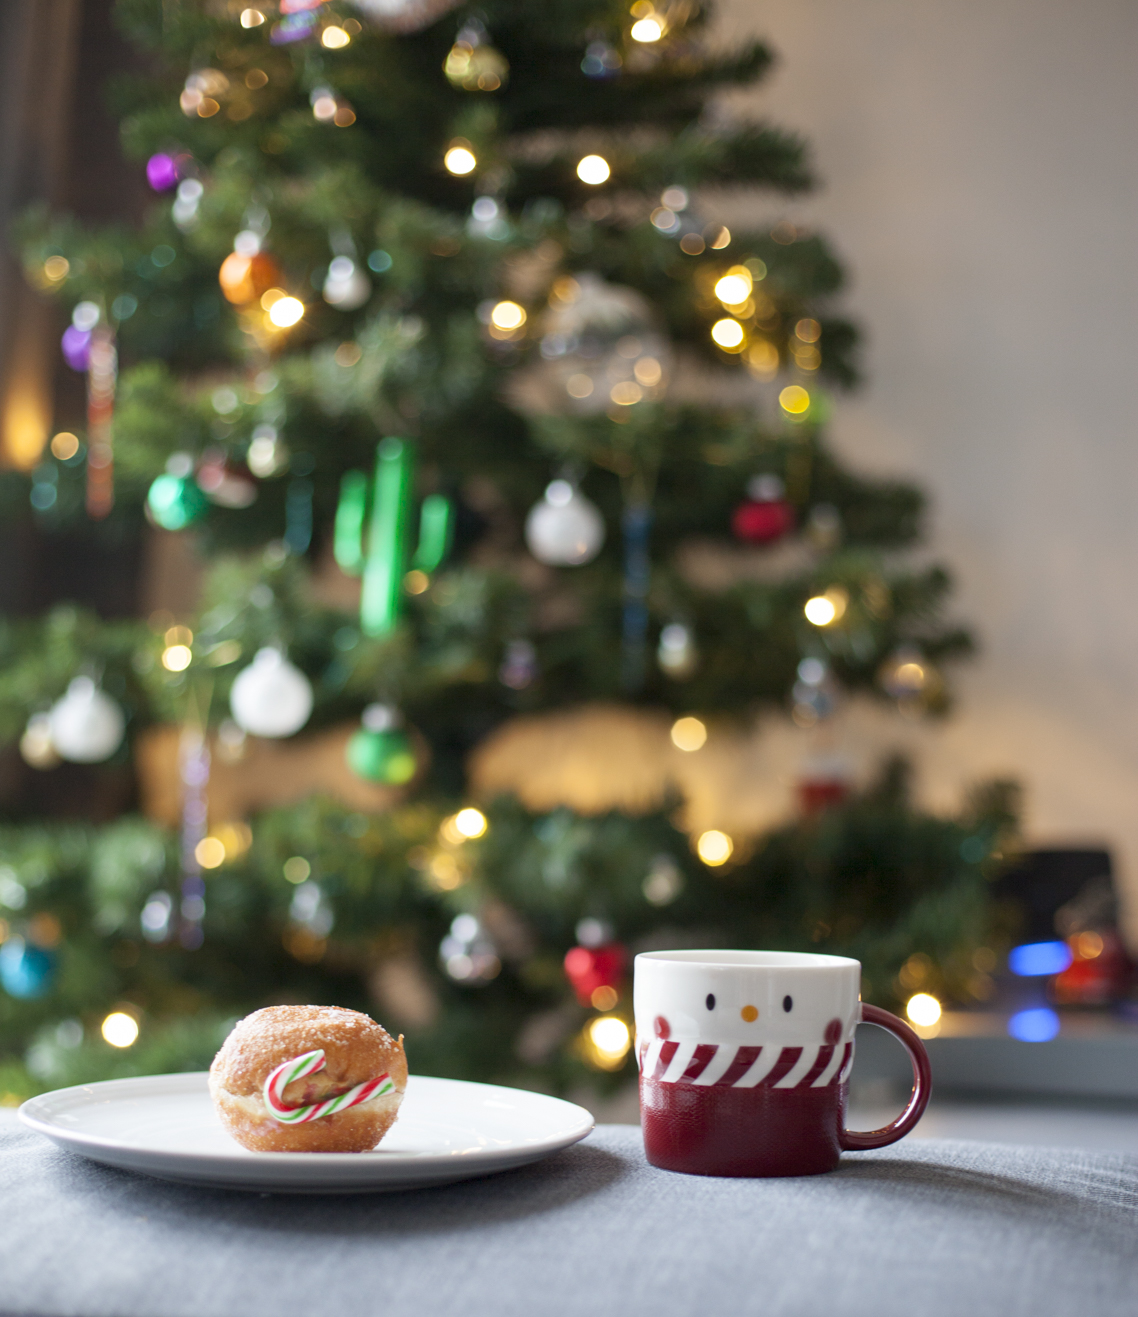 Mulled wine and a christmas doughnut donut in front of a christmas tree